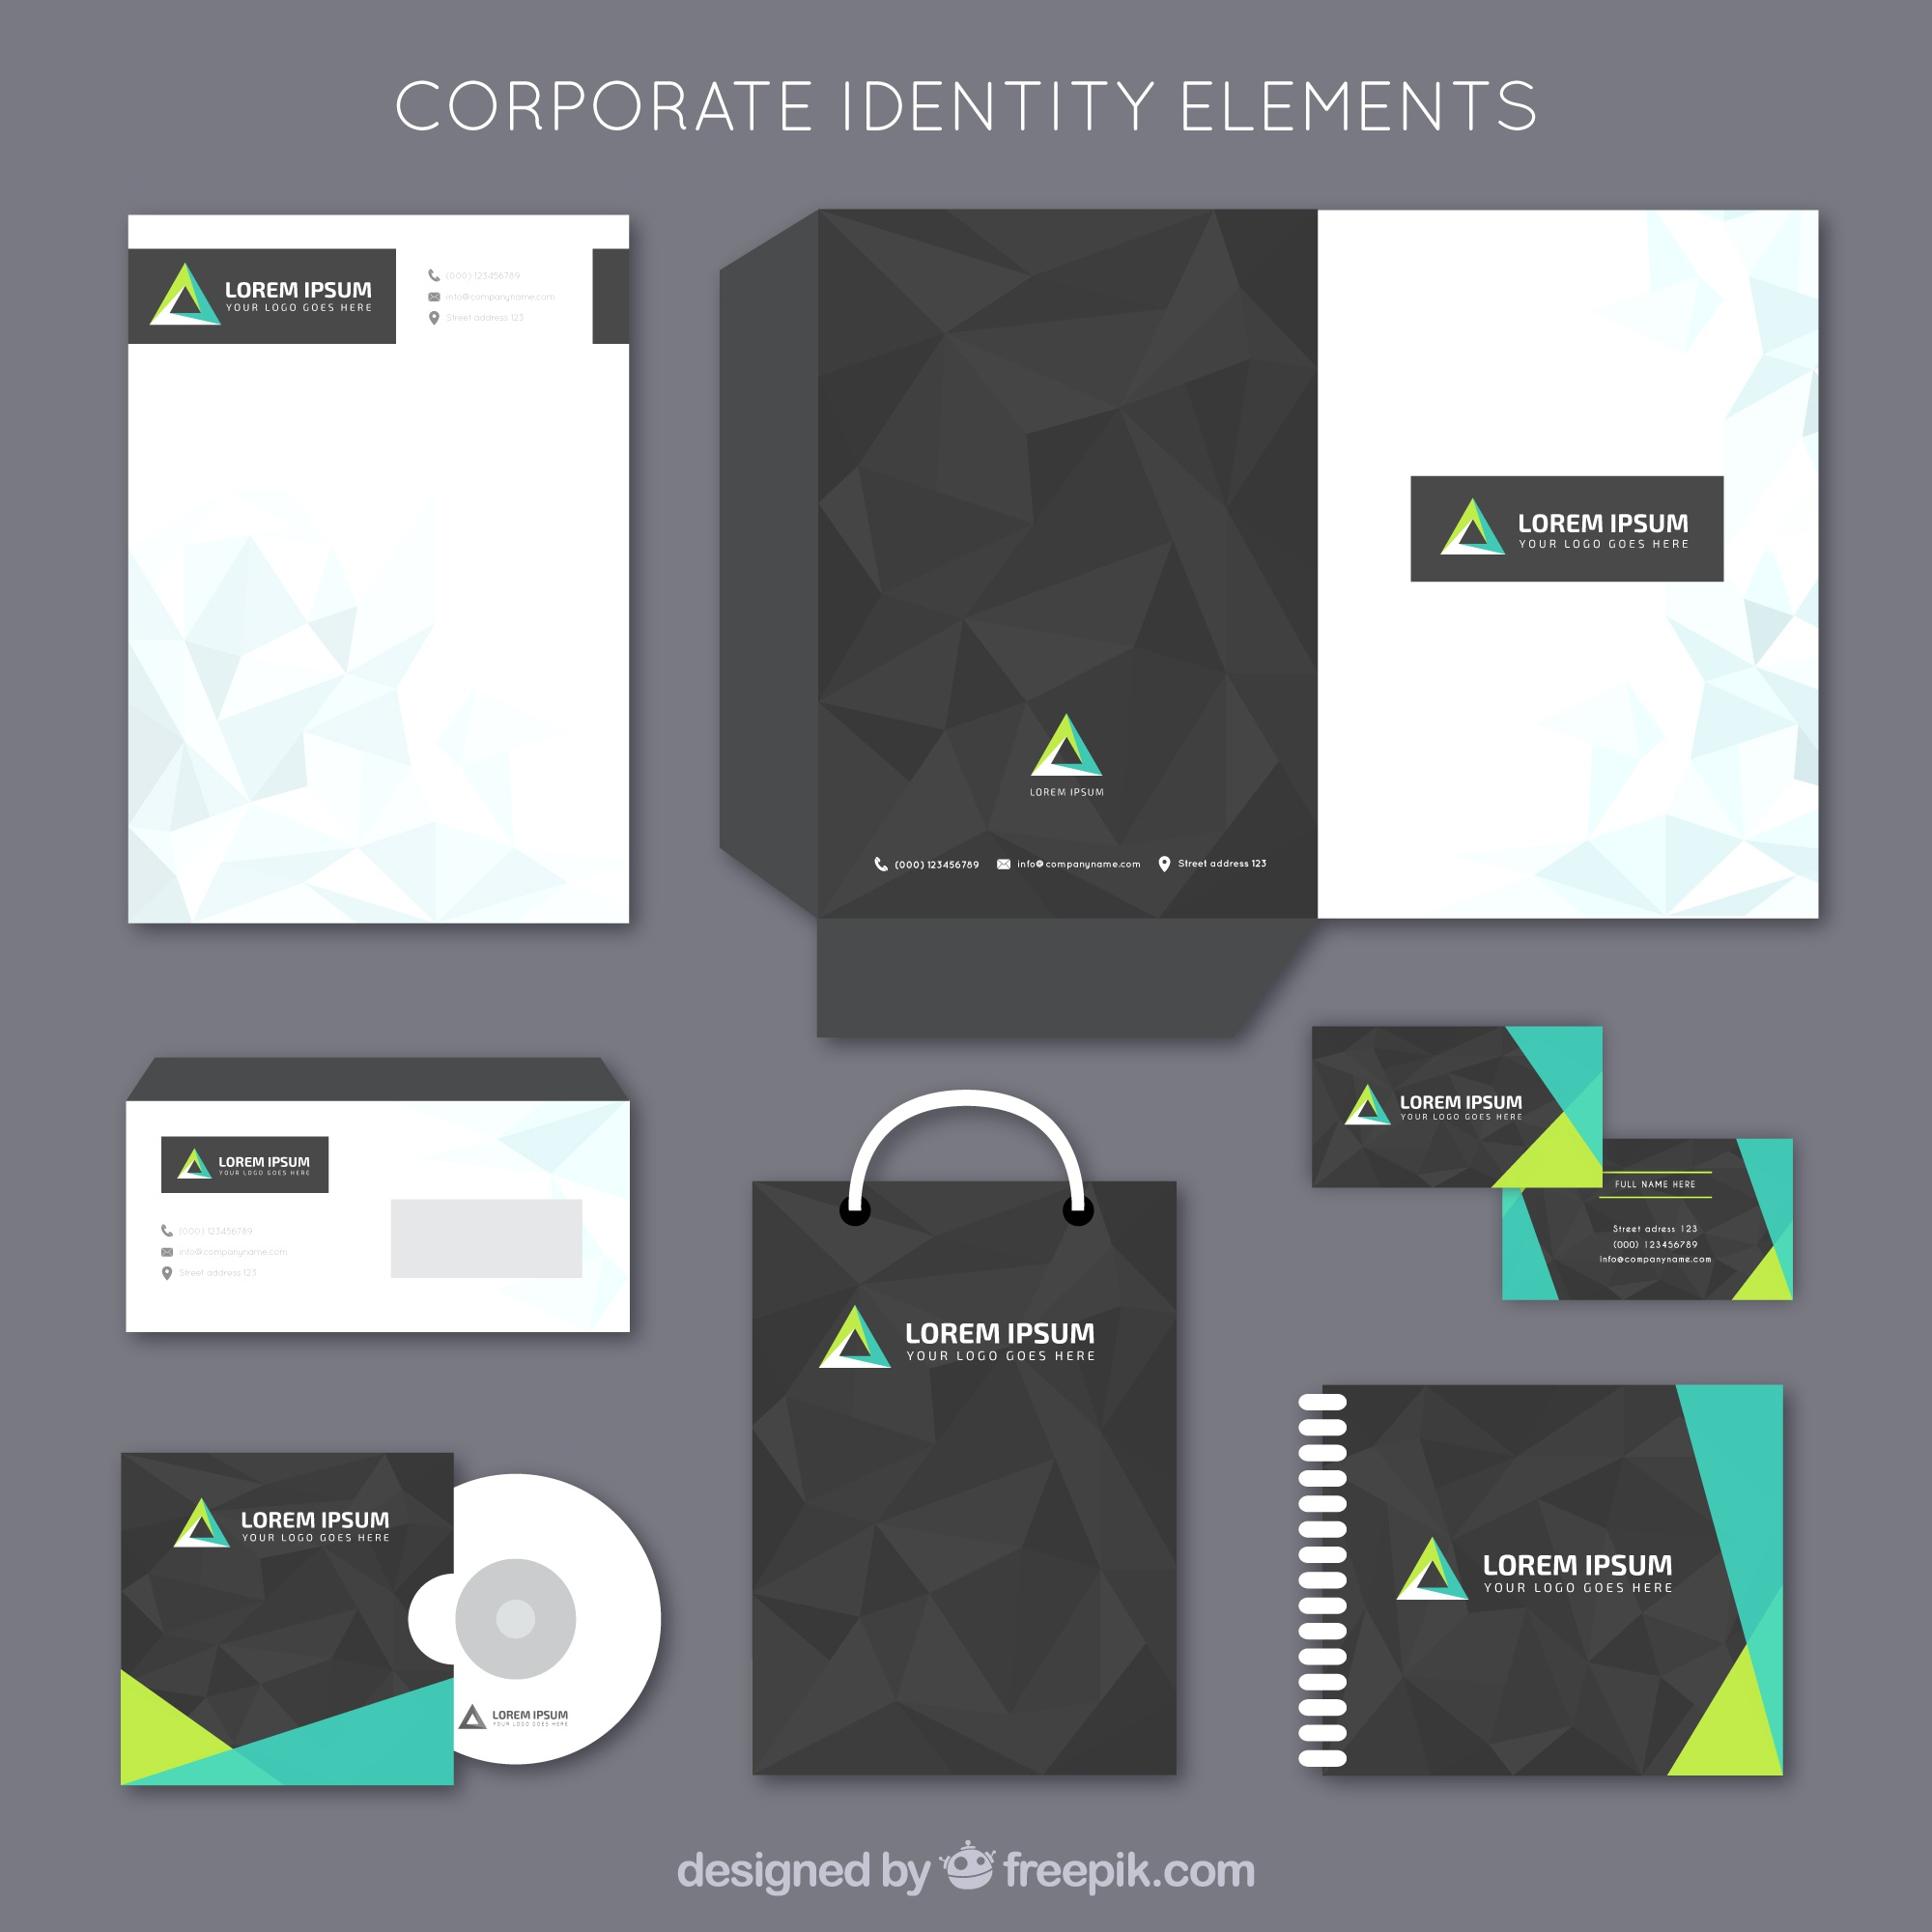 Corporate stationery elements